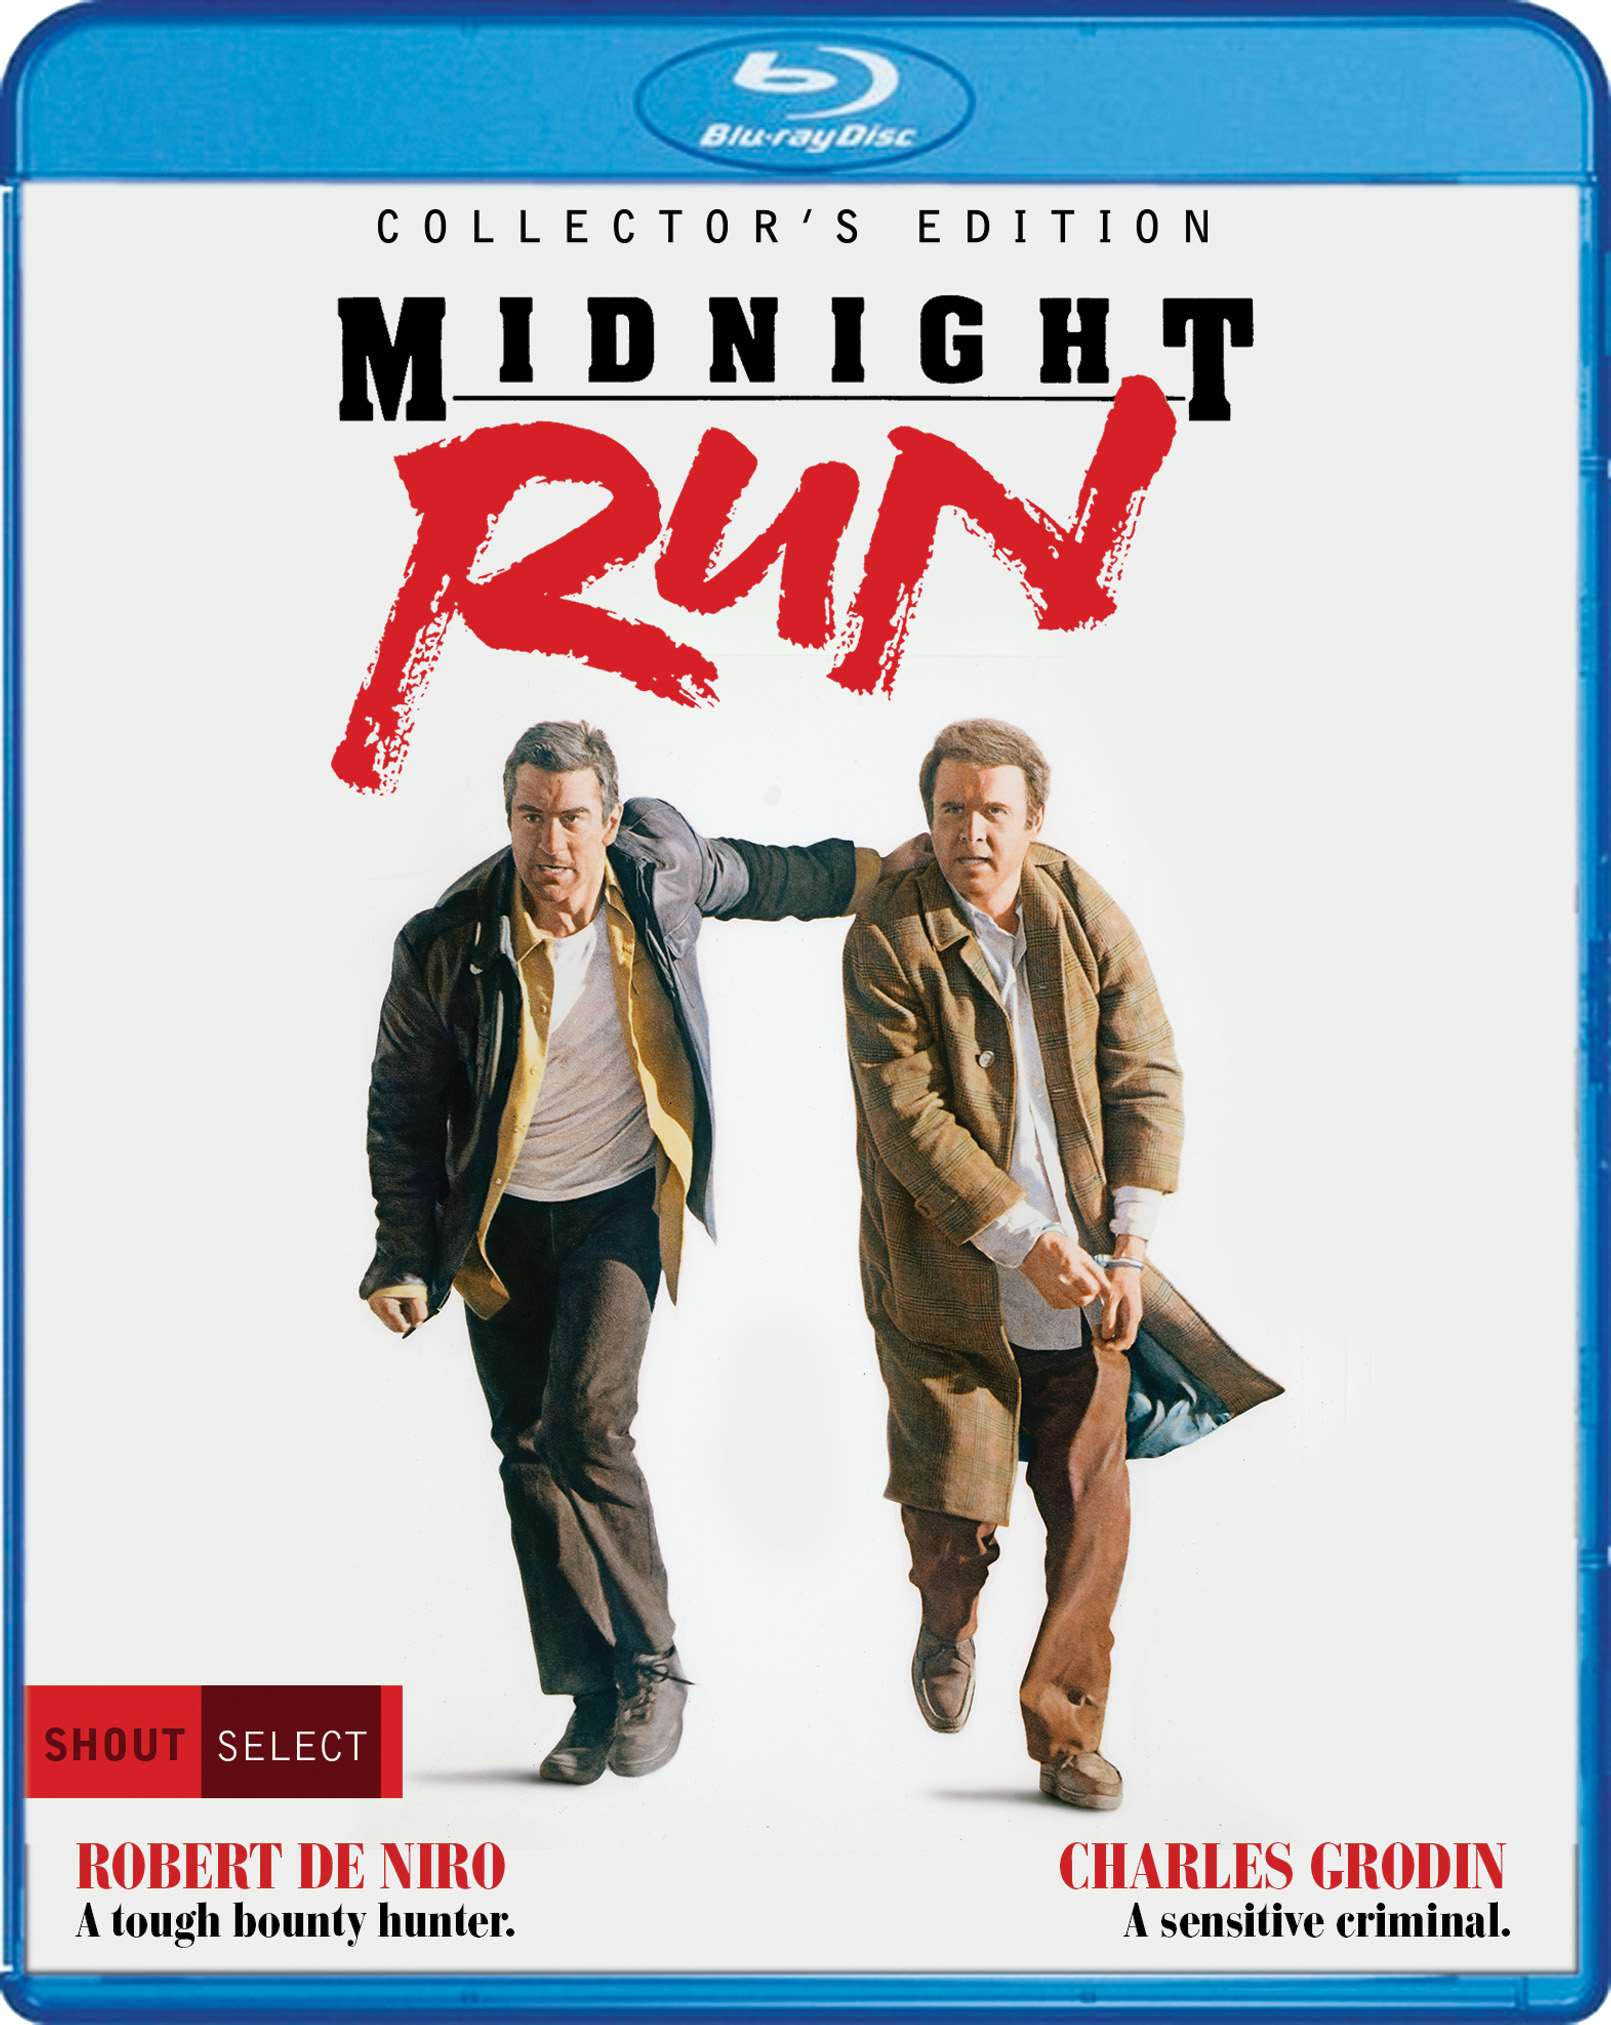 Midnight_Run_Cover_Art